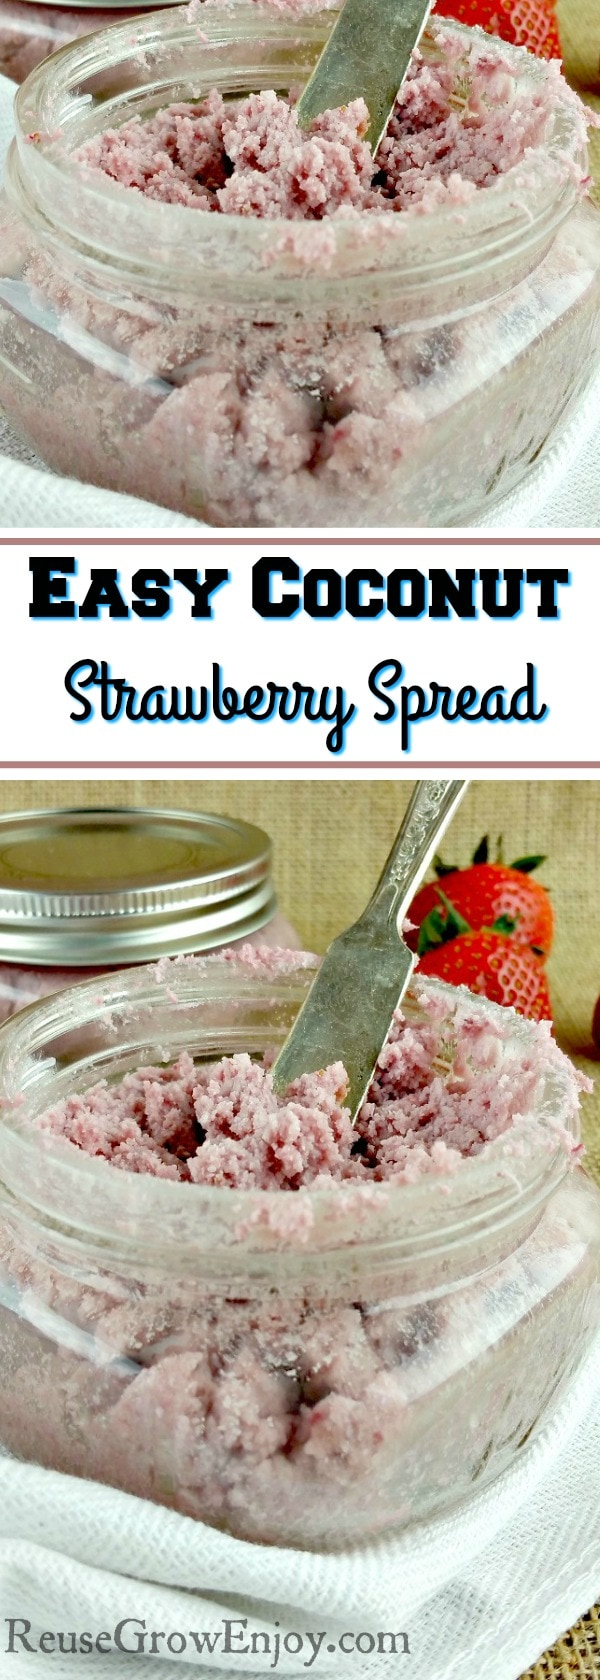 If you like coconut and strawberries, this is a must try recipe. It is a recipe for Coconut Strawberry Spread and it is super easy to make!